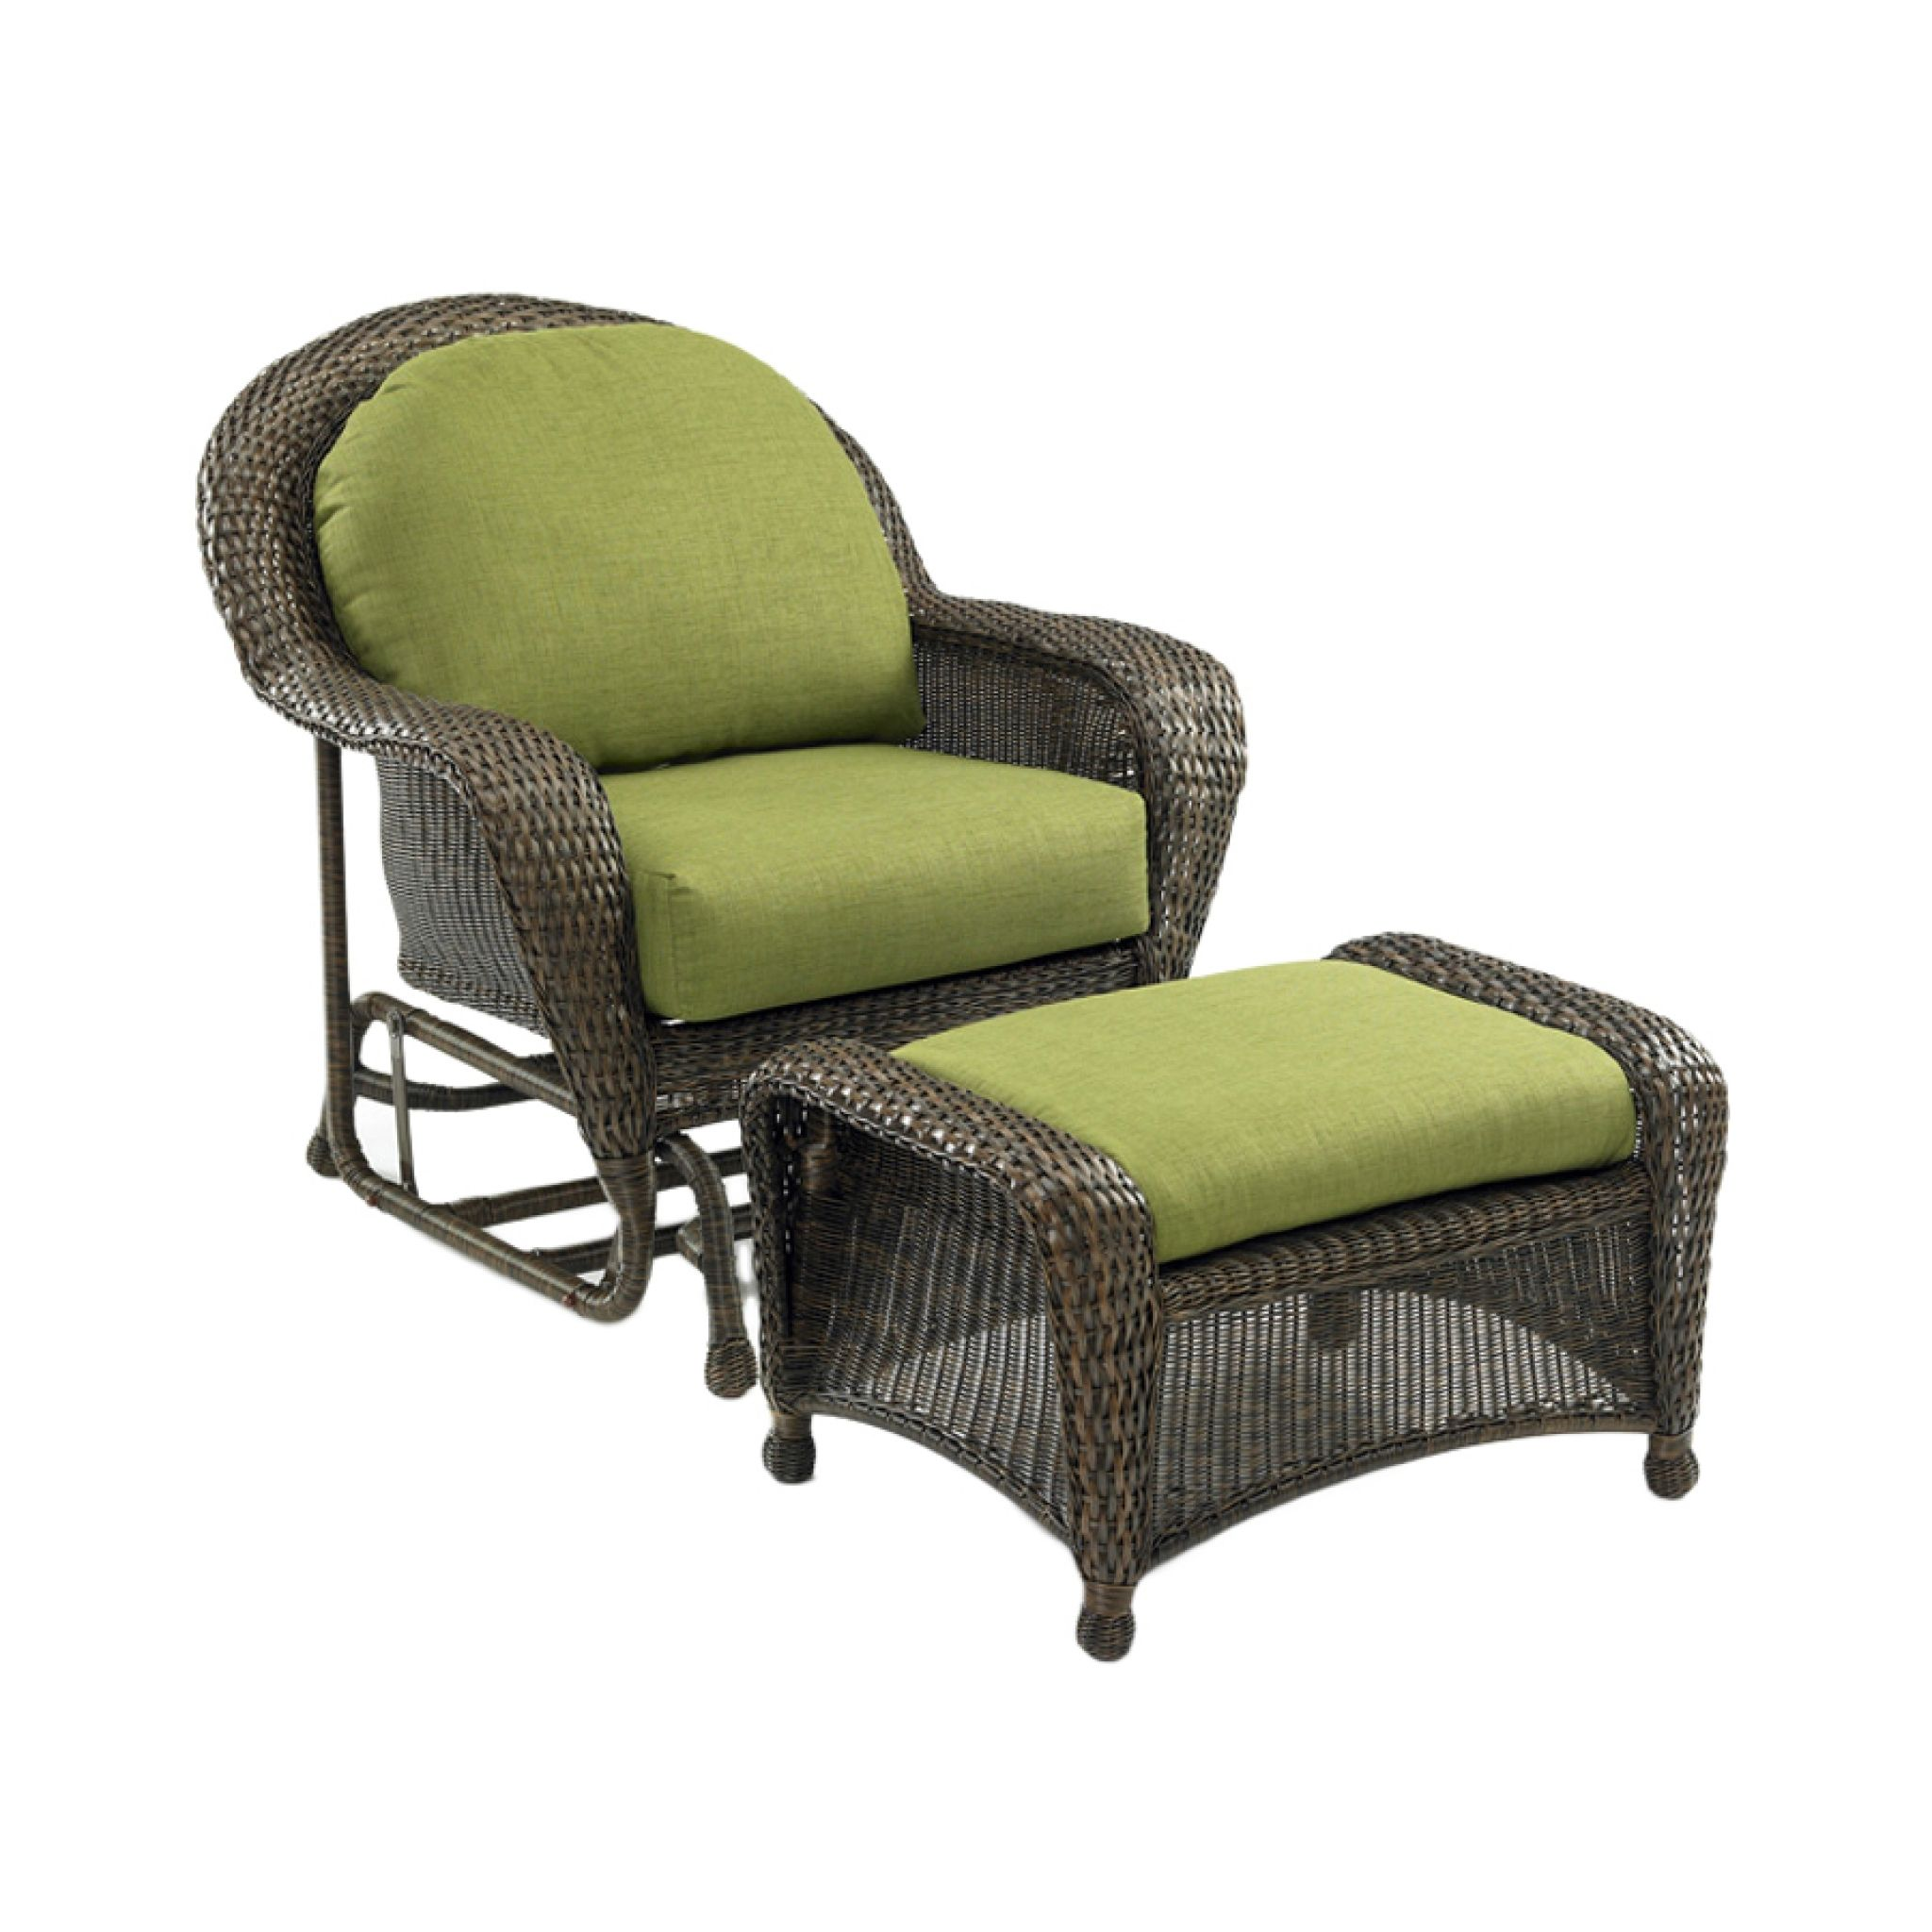 Glider Outdoor Patio Furniture Favorite Interior Paint Colors Check More At Http